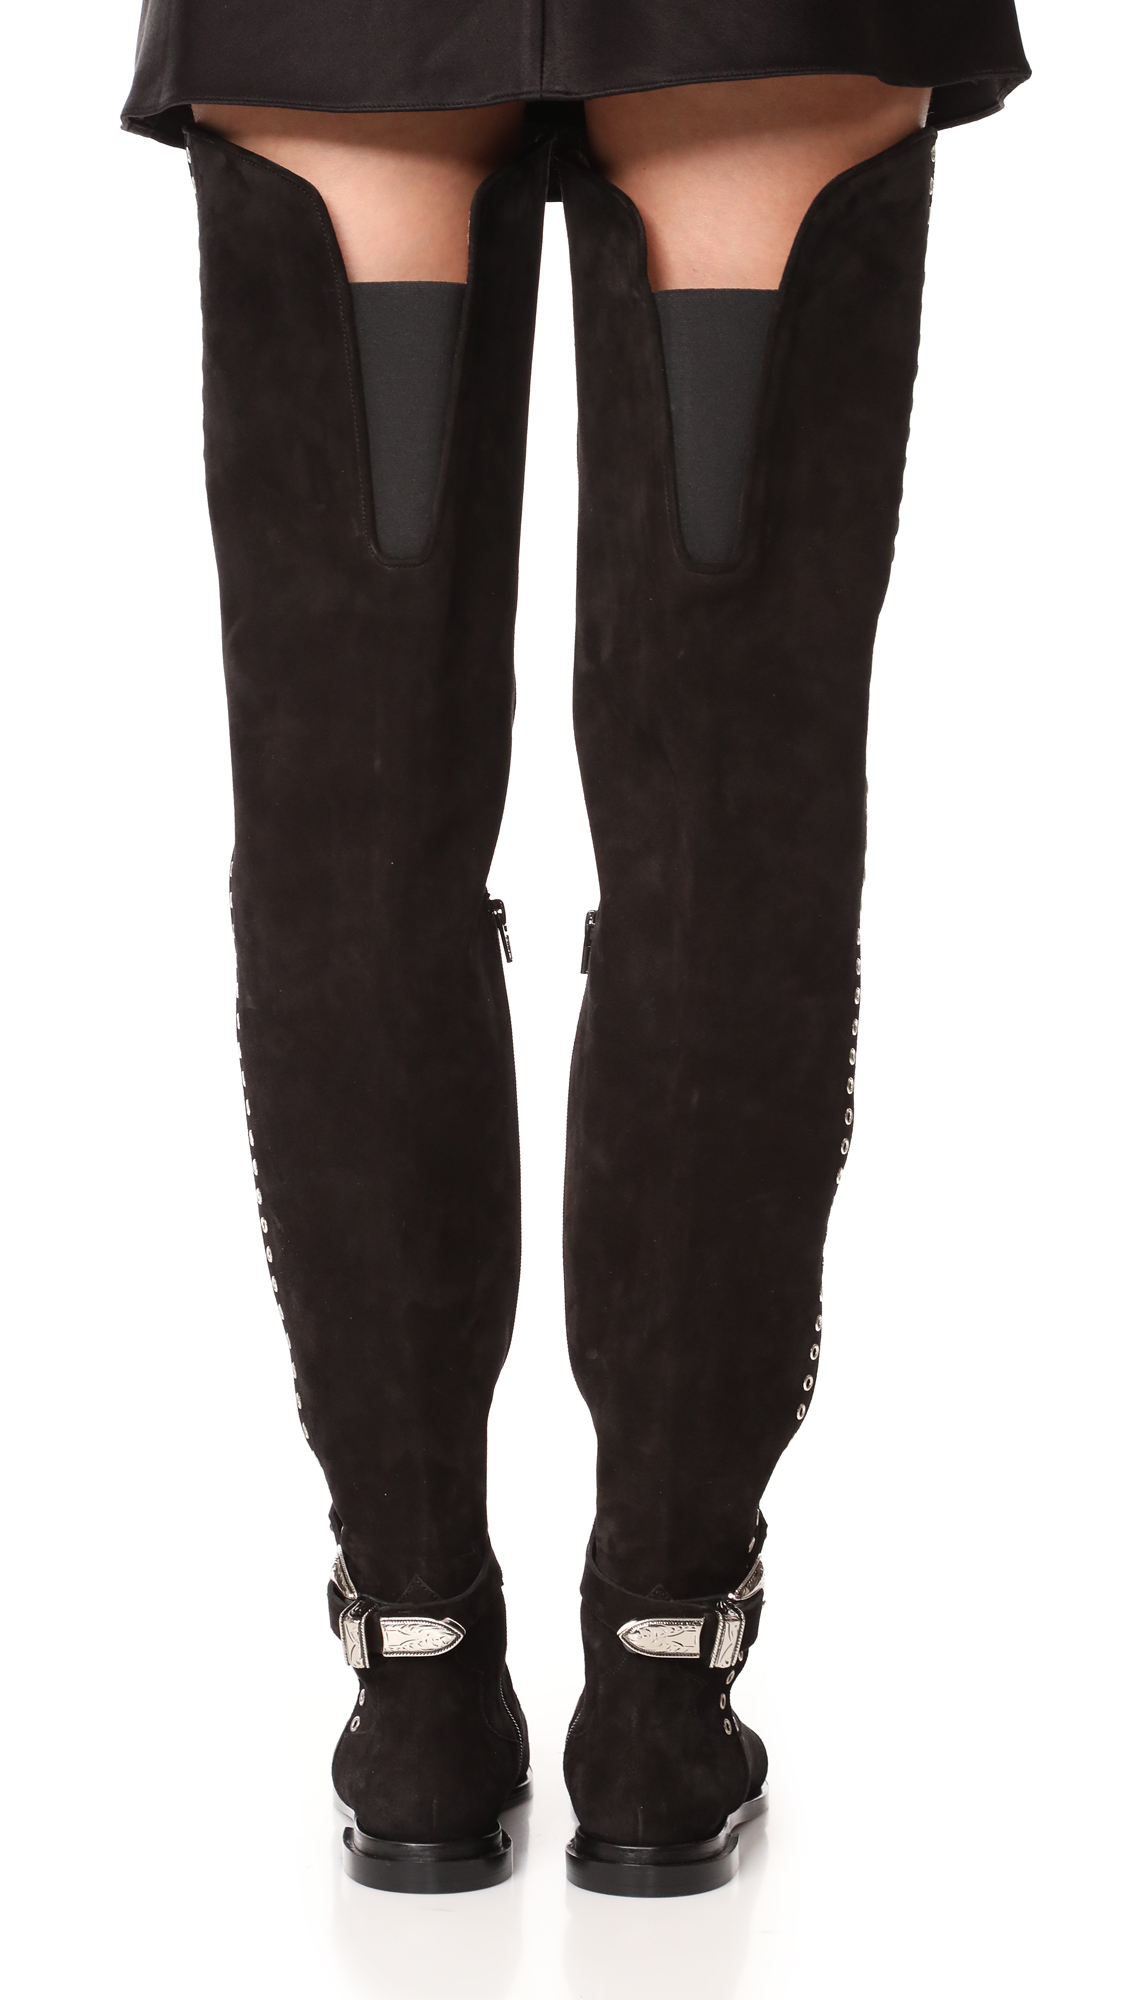 TOGA PULLA Thigh high boots chJ5X